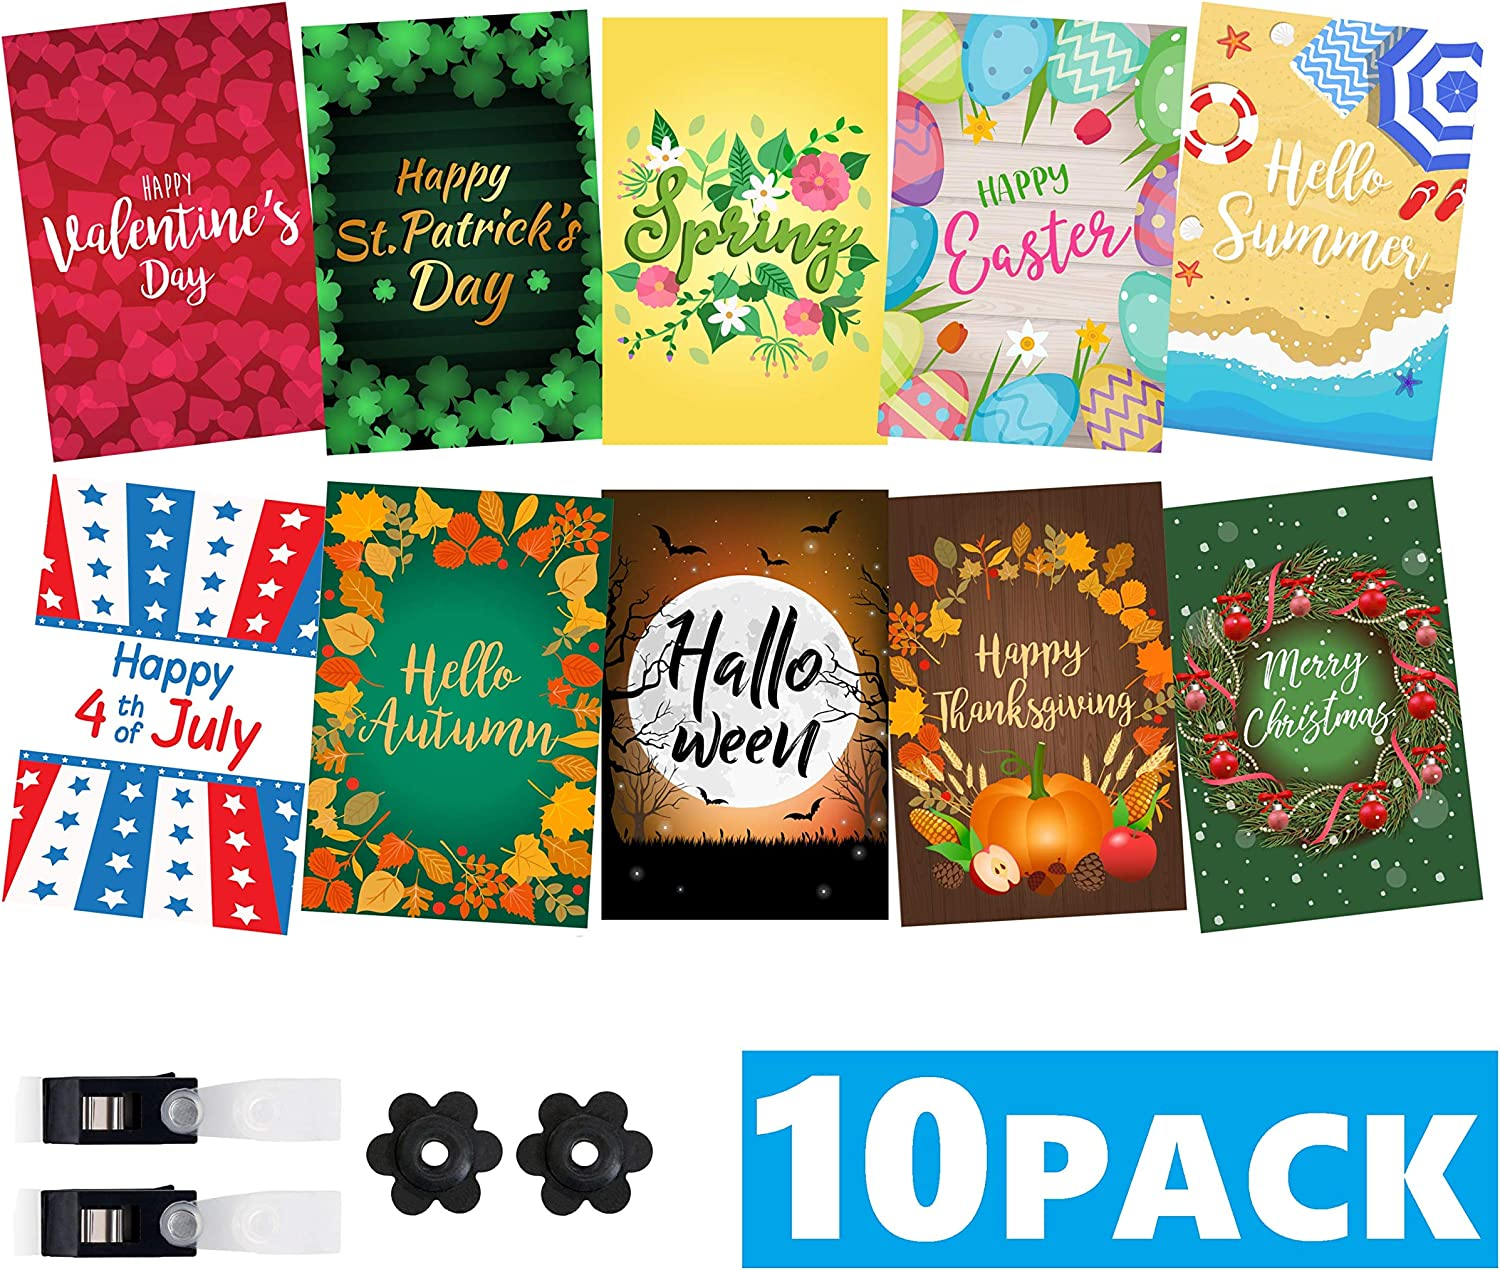 "Mogarden Seasonal Garden Flags Set - 10 Pack, Free 2 Stopper & 2 Wind Clip, Double Sided Yard Flags, 12"" x 18"" Size, Thick Weatherproof Polyester"